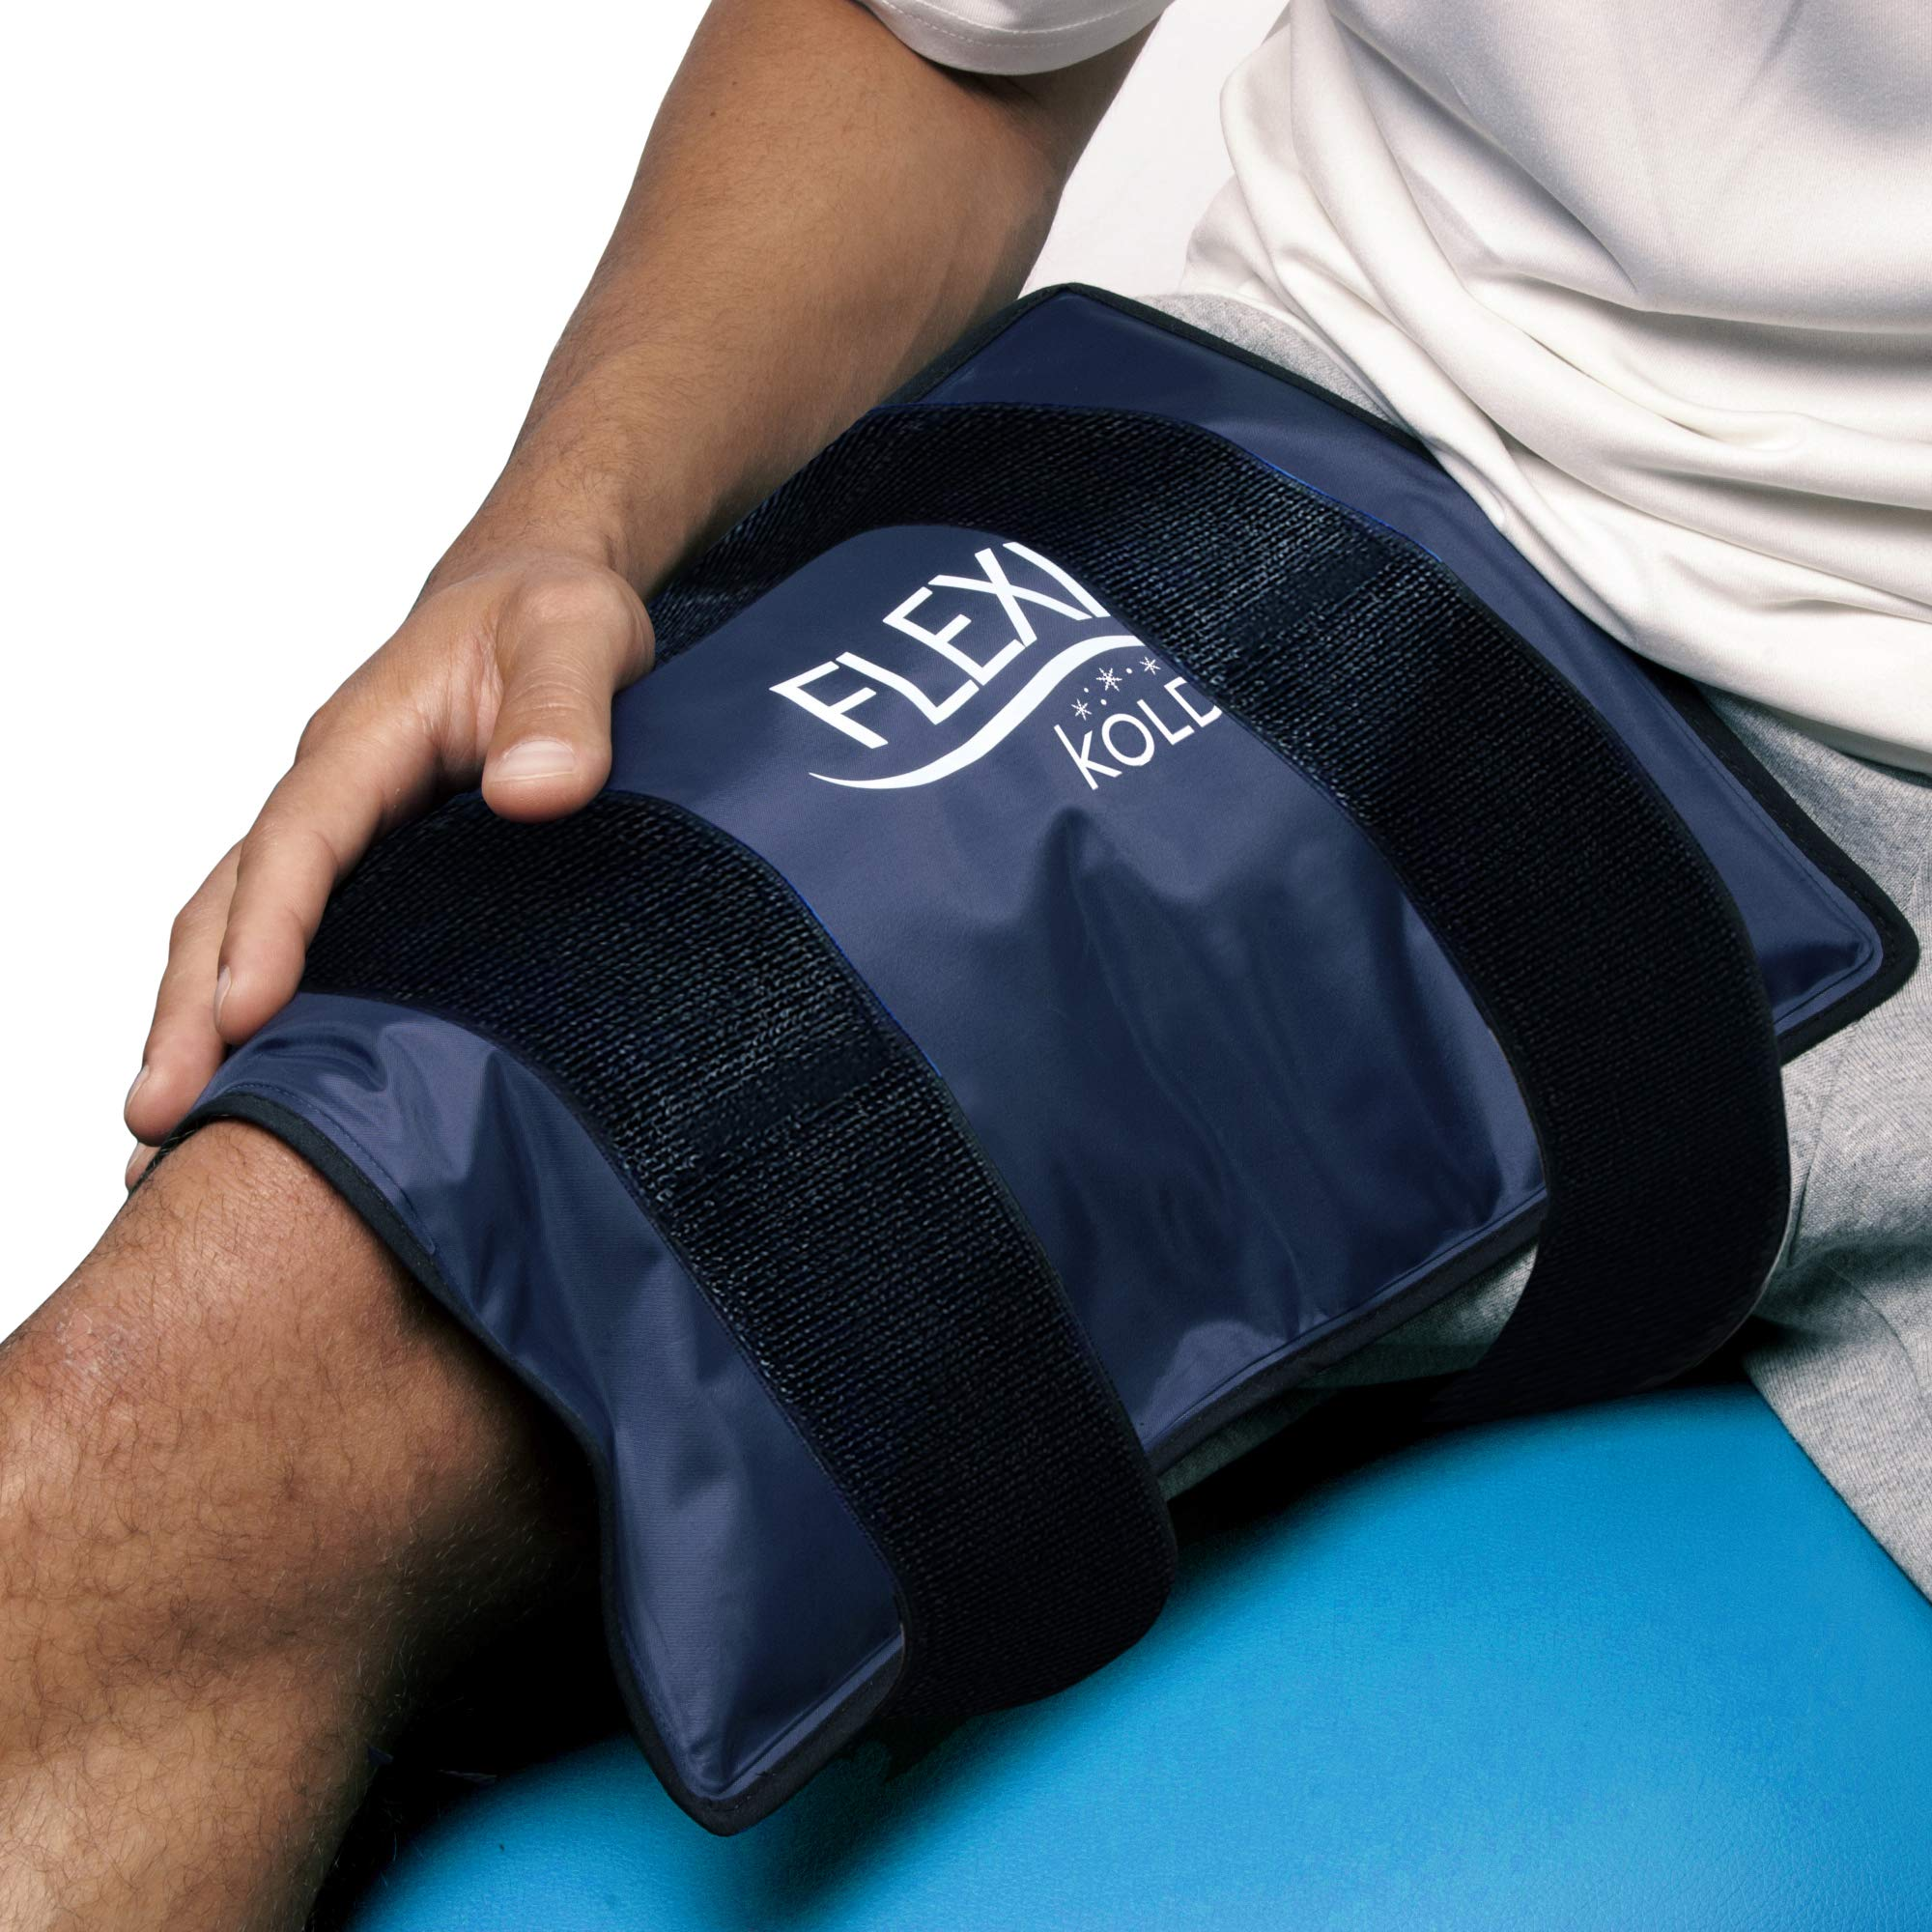 FlexiKold Gel Ice Pack w/Straps (Standard Large: 10.5'' x 14.5'') - One (1) Reusable Cold Therapy (for Pain and Injuries, wrap Around Knee, Shoulder, Back, Ankle, Neck, Hip, Wrist) - 6300 Cold-Strap